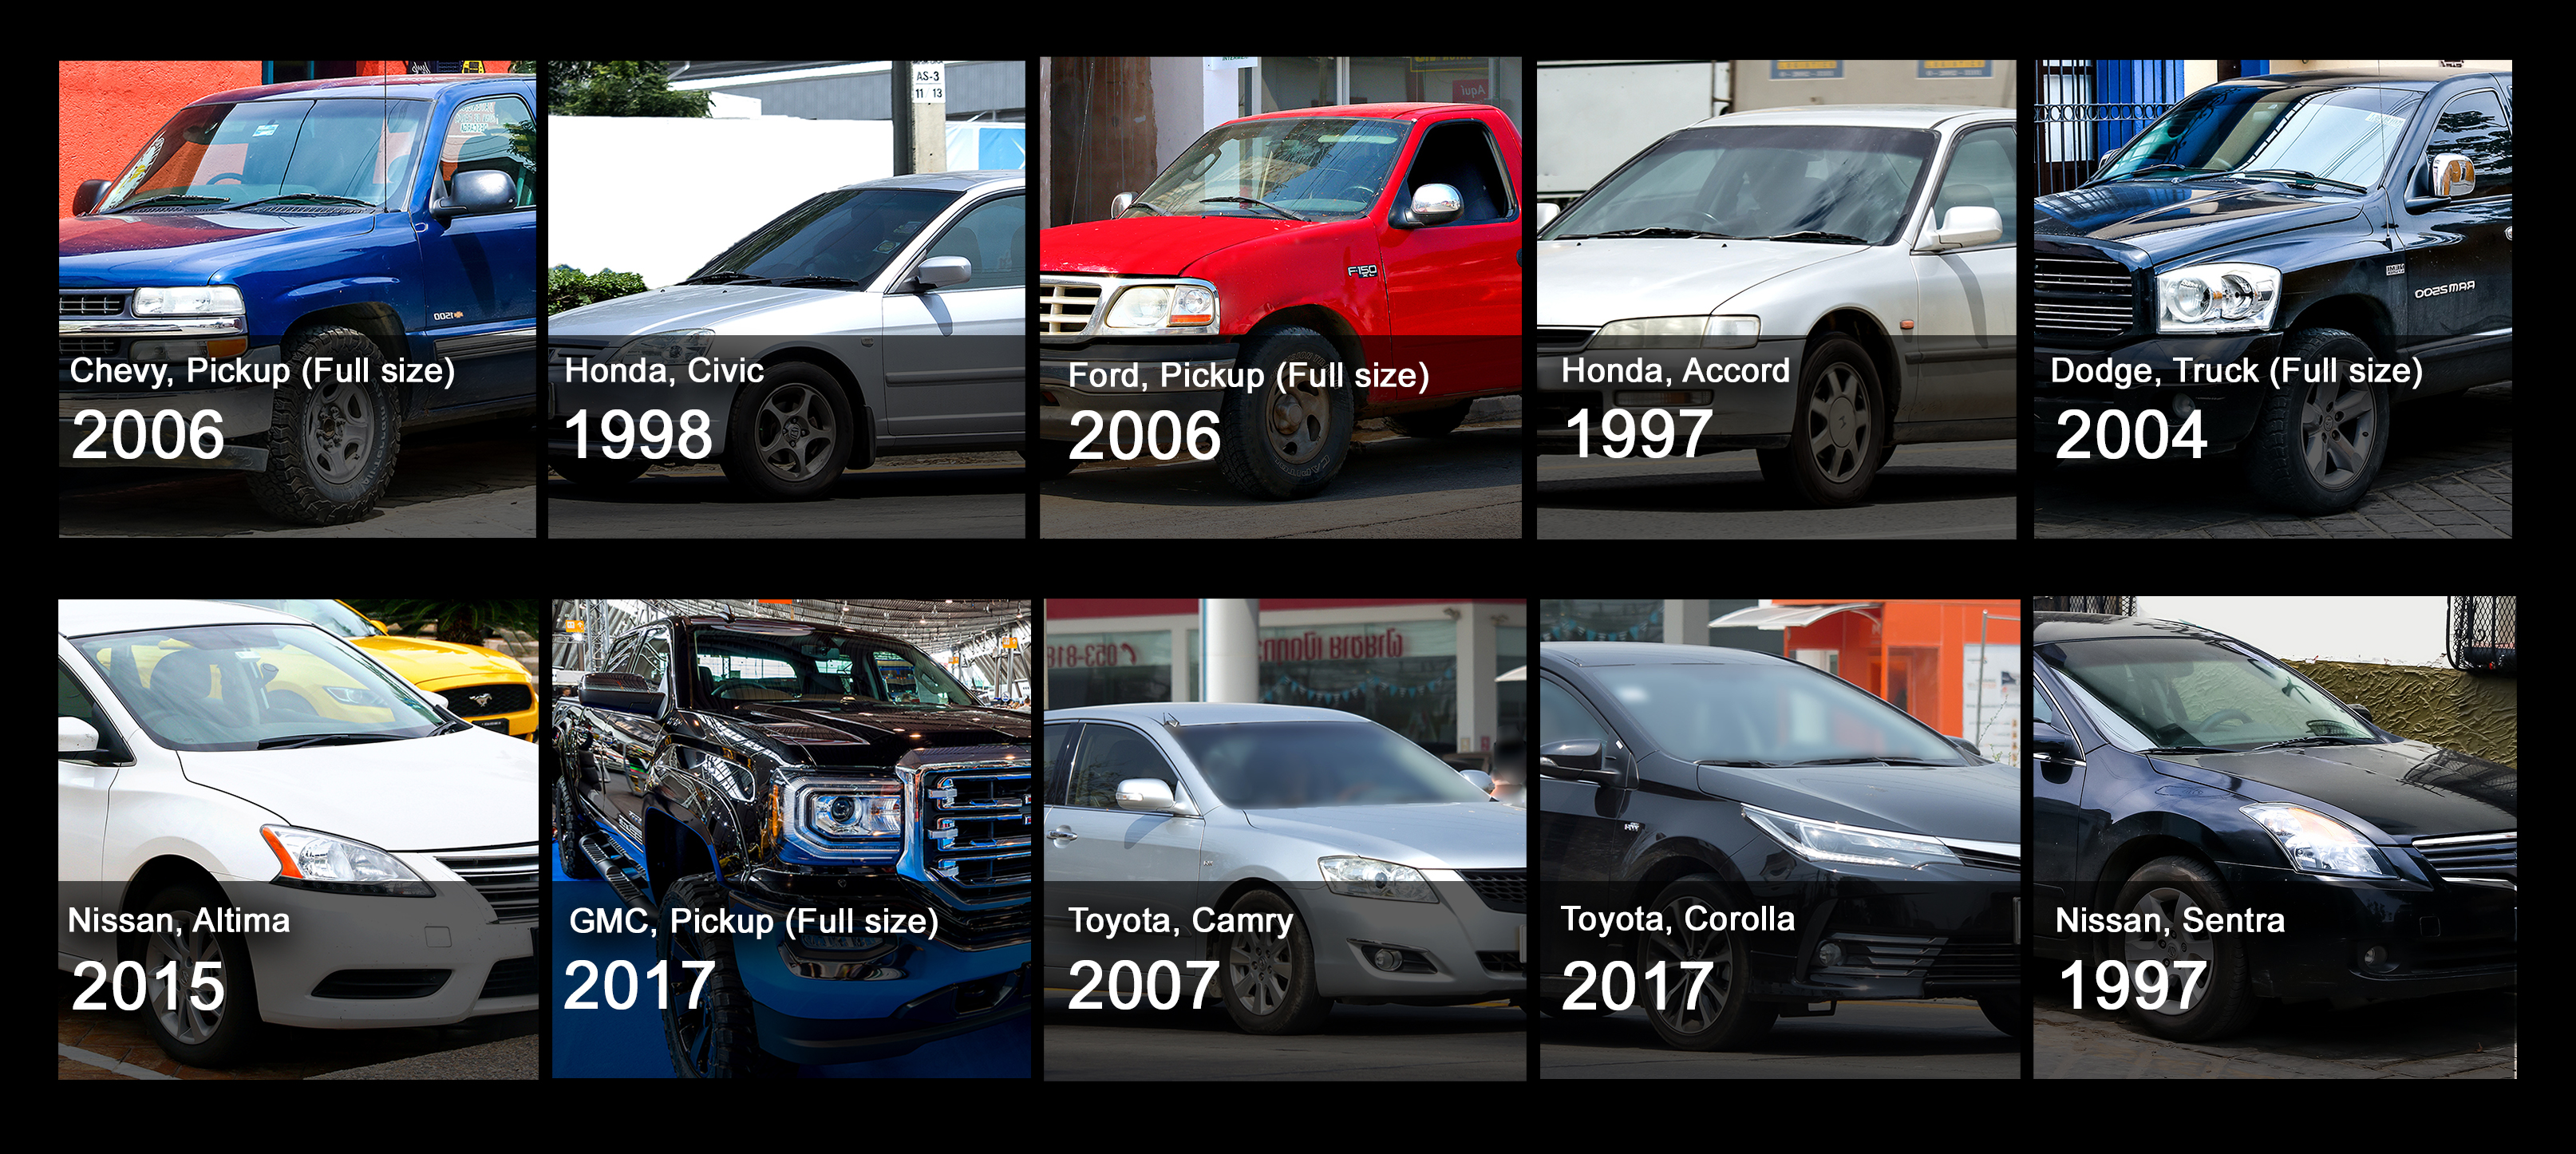 10 Most Stolen Vehicles in Arizona